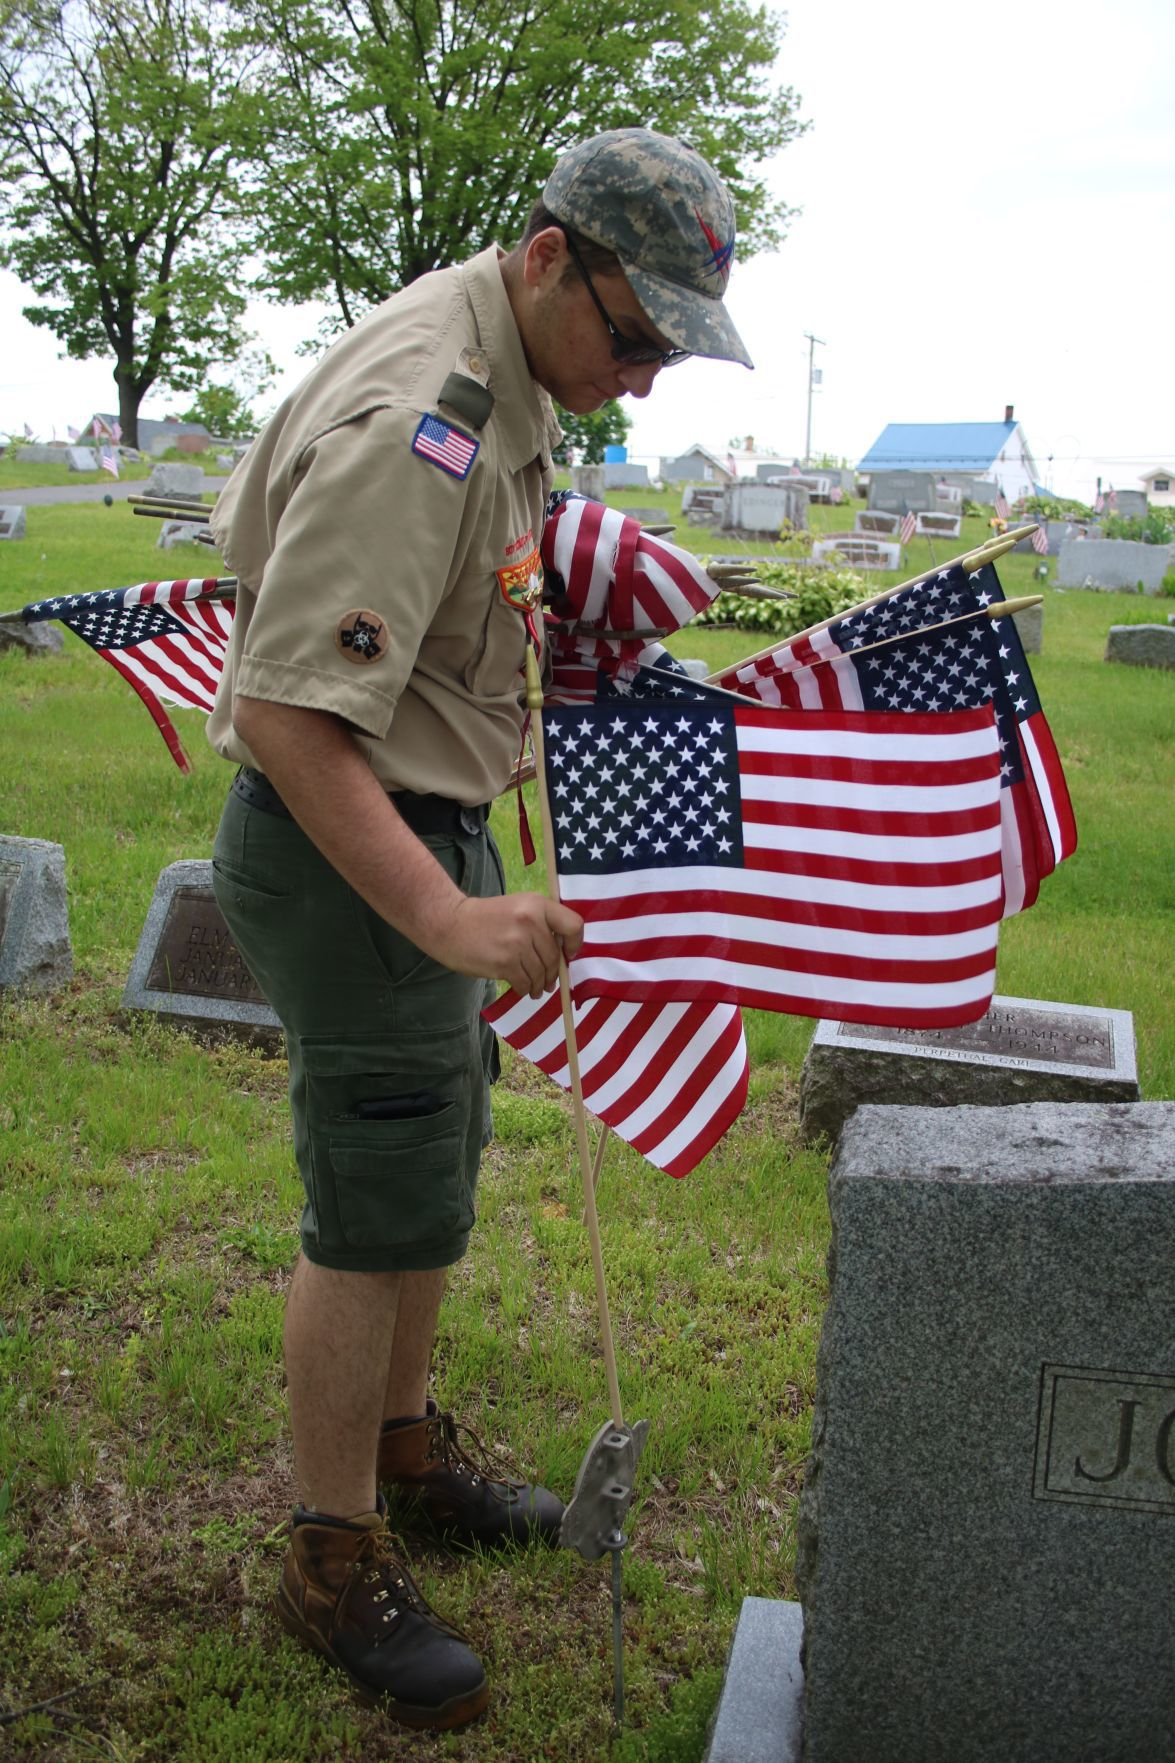 Scouts chip in to assist with flag placement ahead of Memorial Day